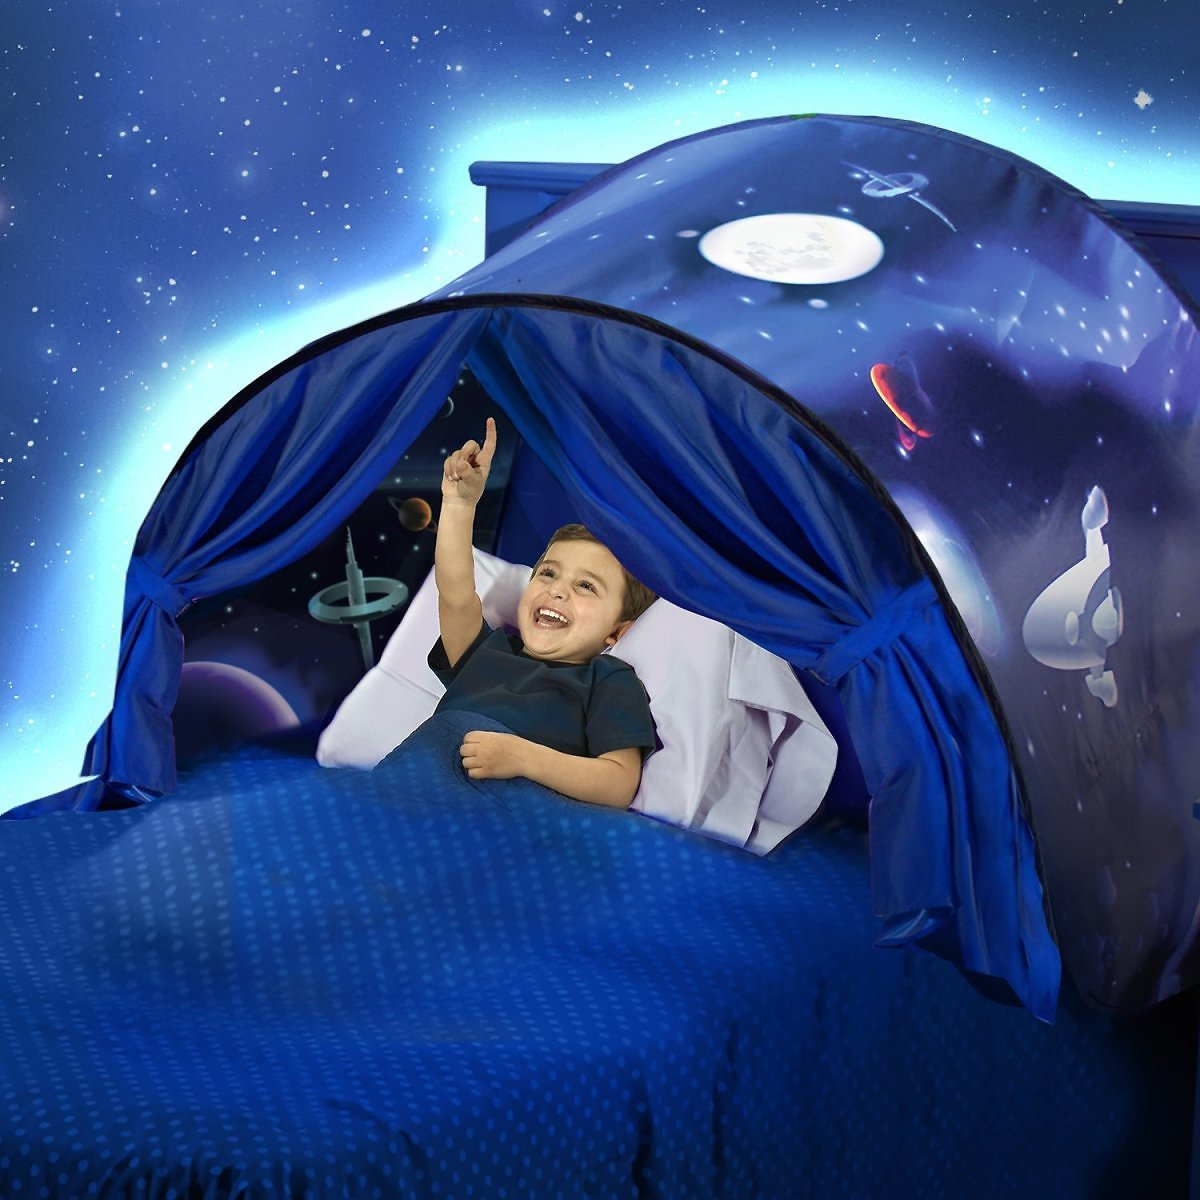 Dream Tents Space Adventure Kids Pop Up Play Tent As Seen On TV